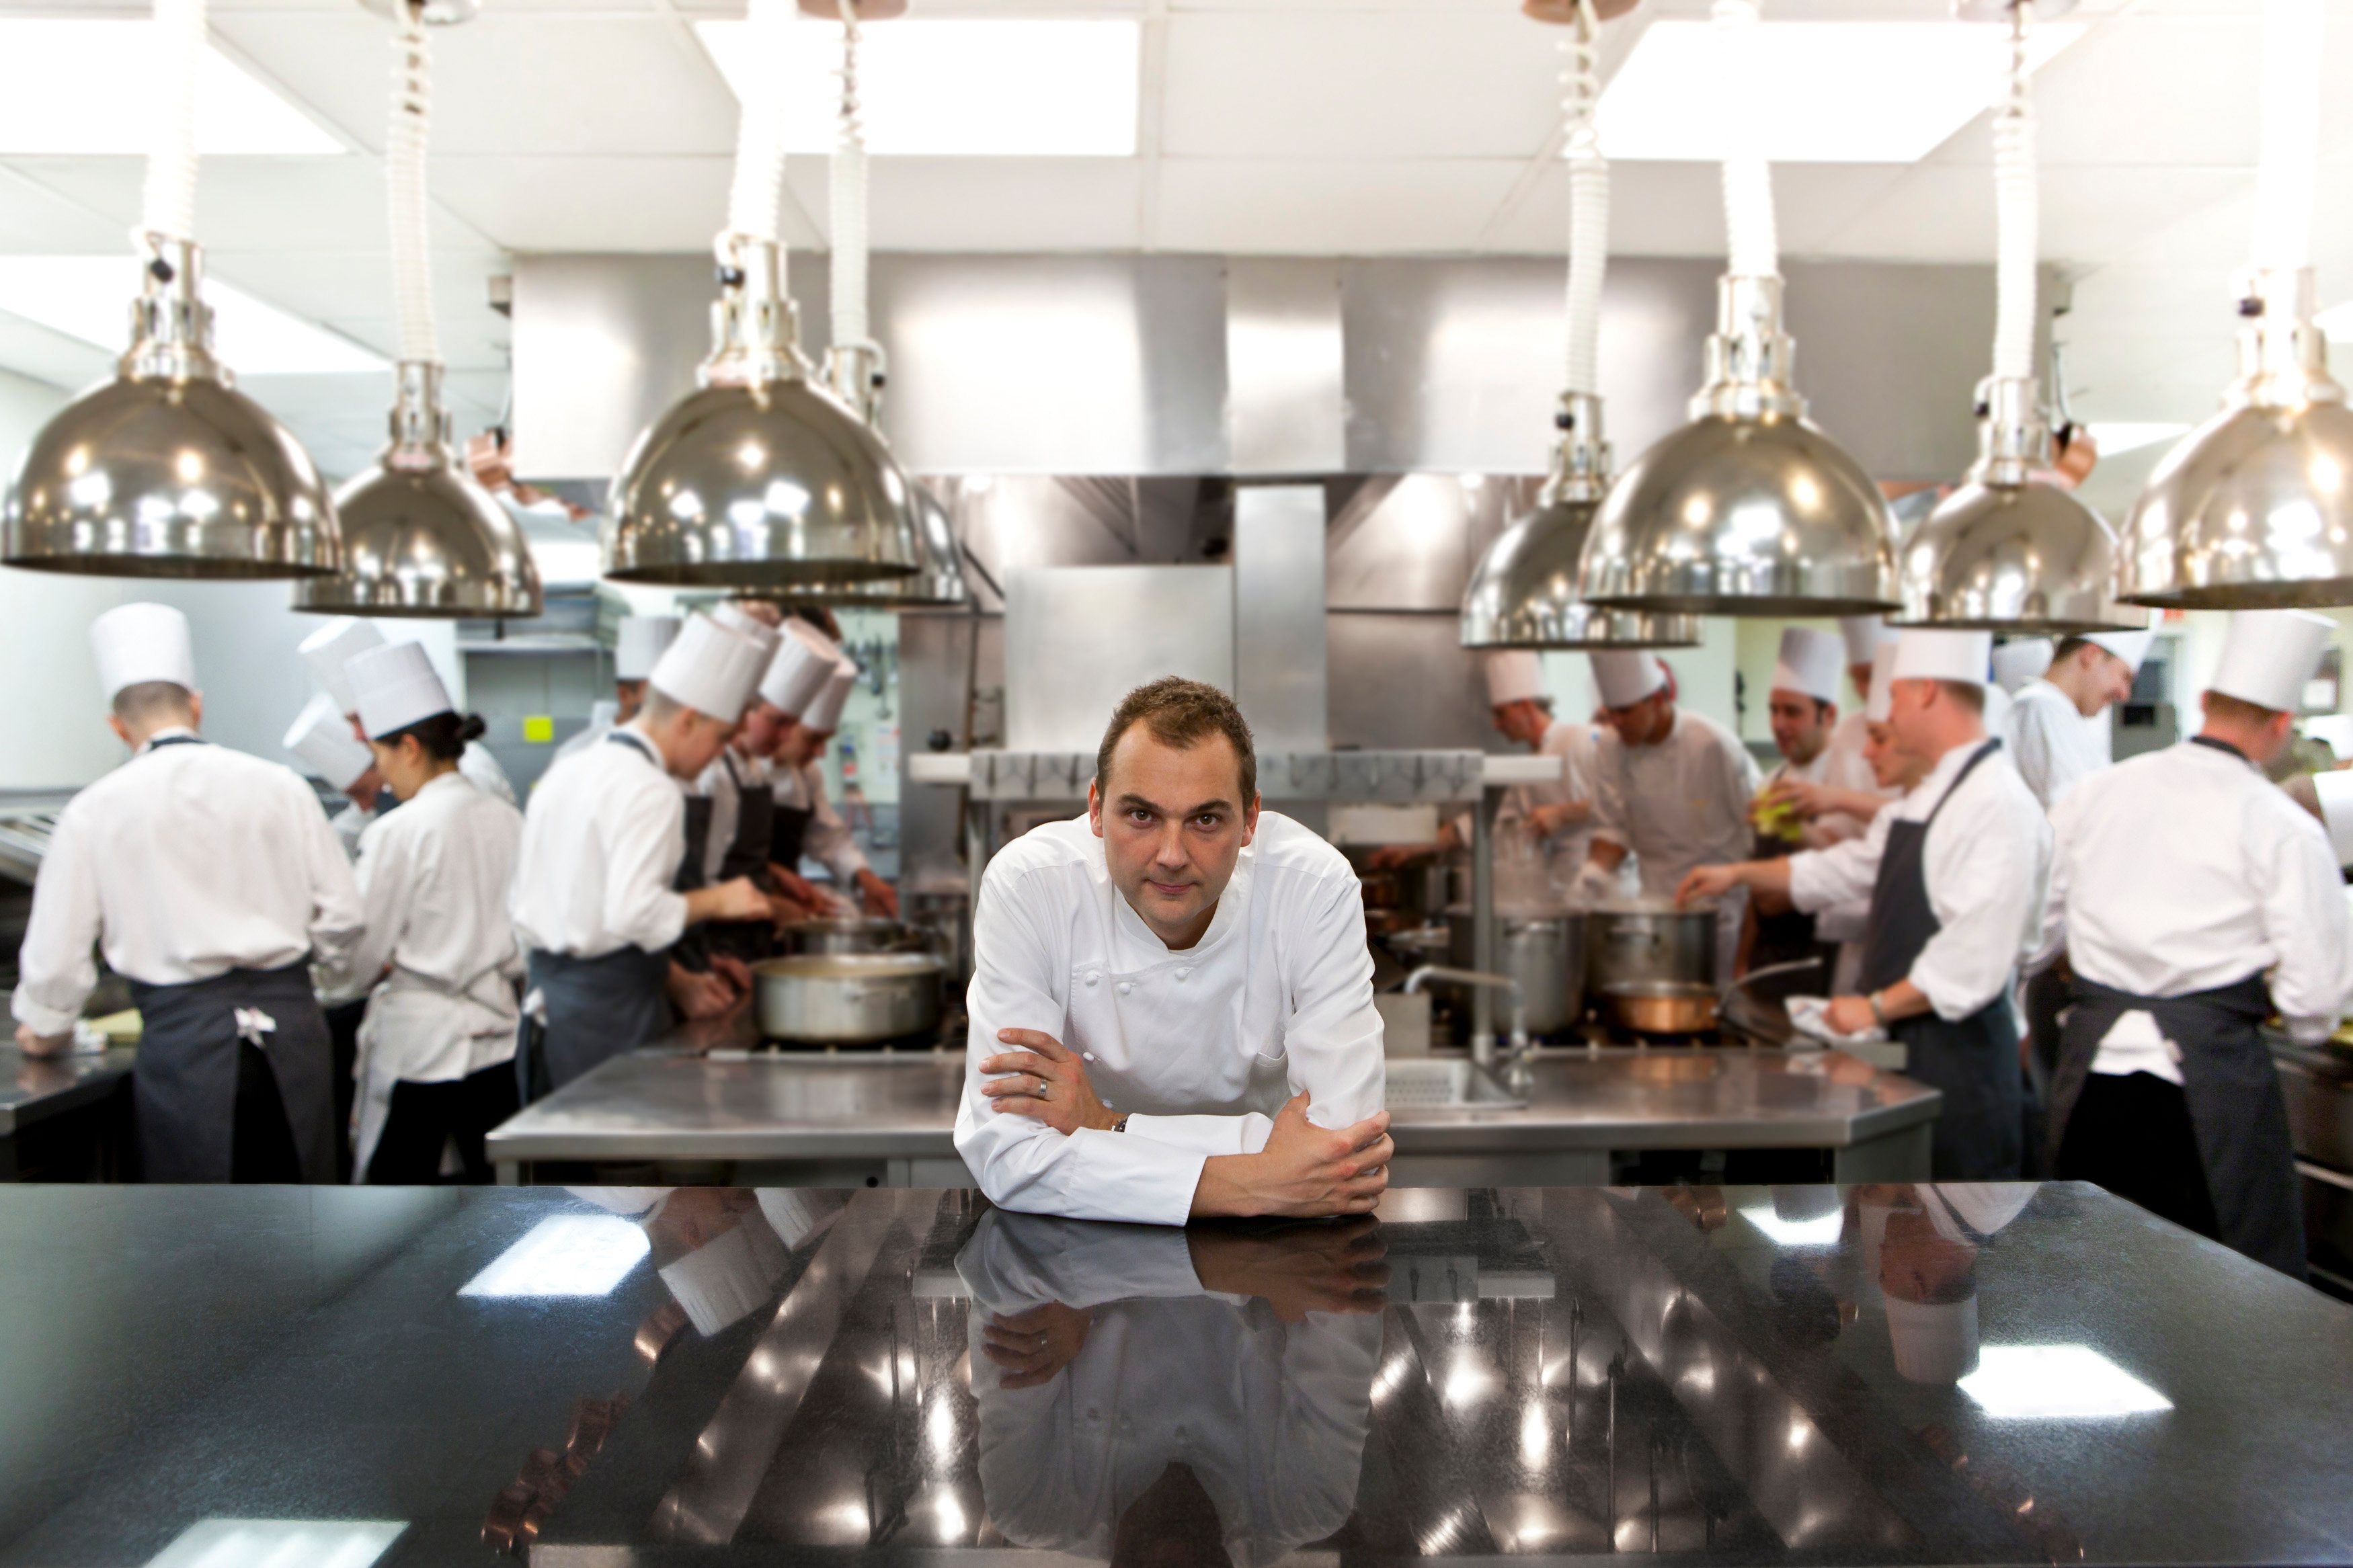 Undated photo of Daniel Humm at the kitchen of Eleven Madison Park in New York. Swiss-born chef Humm is having a dream year. His New York City restaurant, Eleven Madison Park, has three Michelin stars and in April was named one of the 10 best restaurants in the world on the S. Pellegrino and Acqua Panna list produced by Britain's Restaurant Magazine.  REUTERS/Francesco Tonelli/Handout (UNITED STATES - Tags: SOCIETY FOOD) FOR EDITORIAL USE ONLY. NOT FOR SALE FOR MARKETING OR ADVERTISING CAMPAIGNS. THIS IMAGE HAS BEEN SUPPLIED BY A THIRD PARTY. IT IS DISTRIBUTED, EXACTLY AS RECEIVED BY REUTERS, AS A SERVICE TO CLIENTS